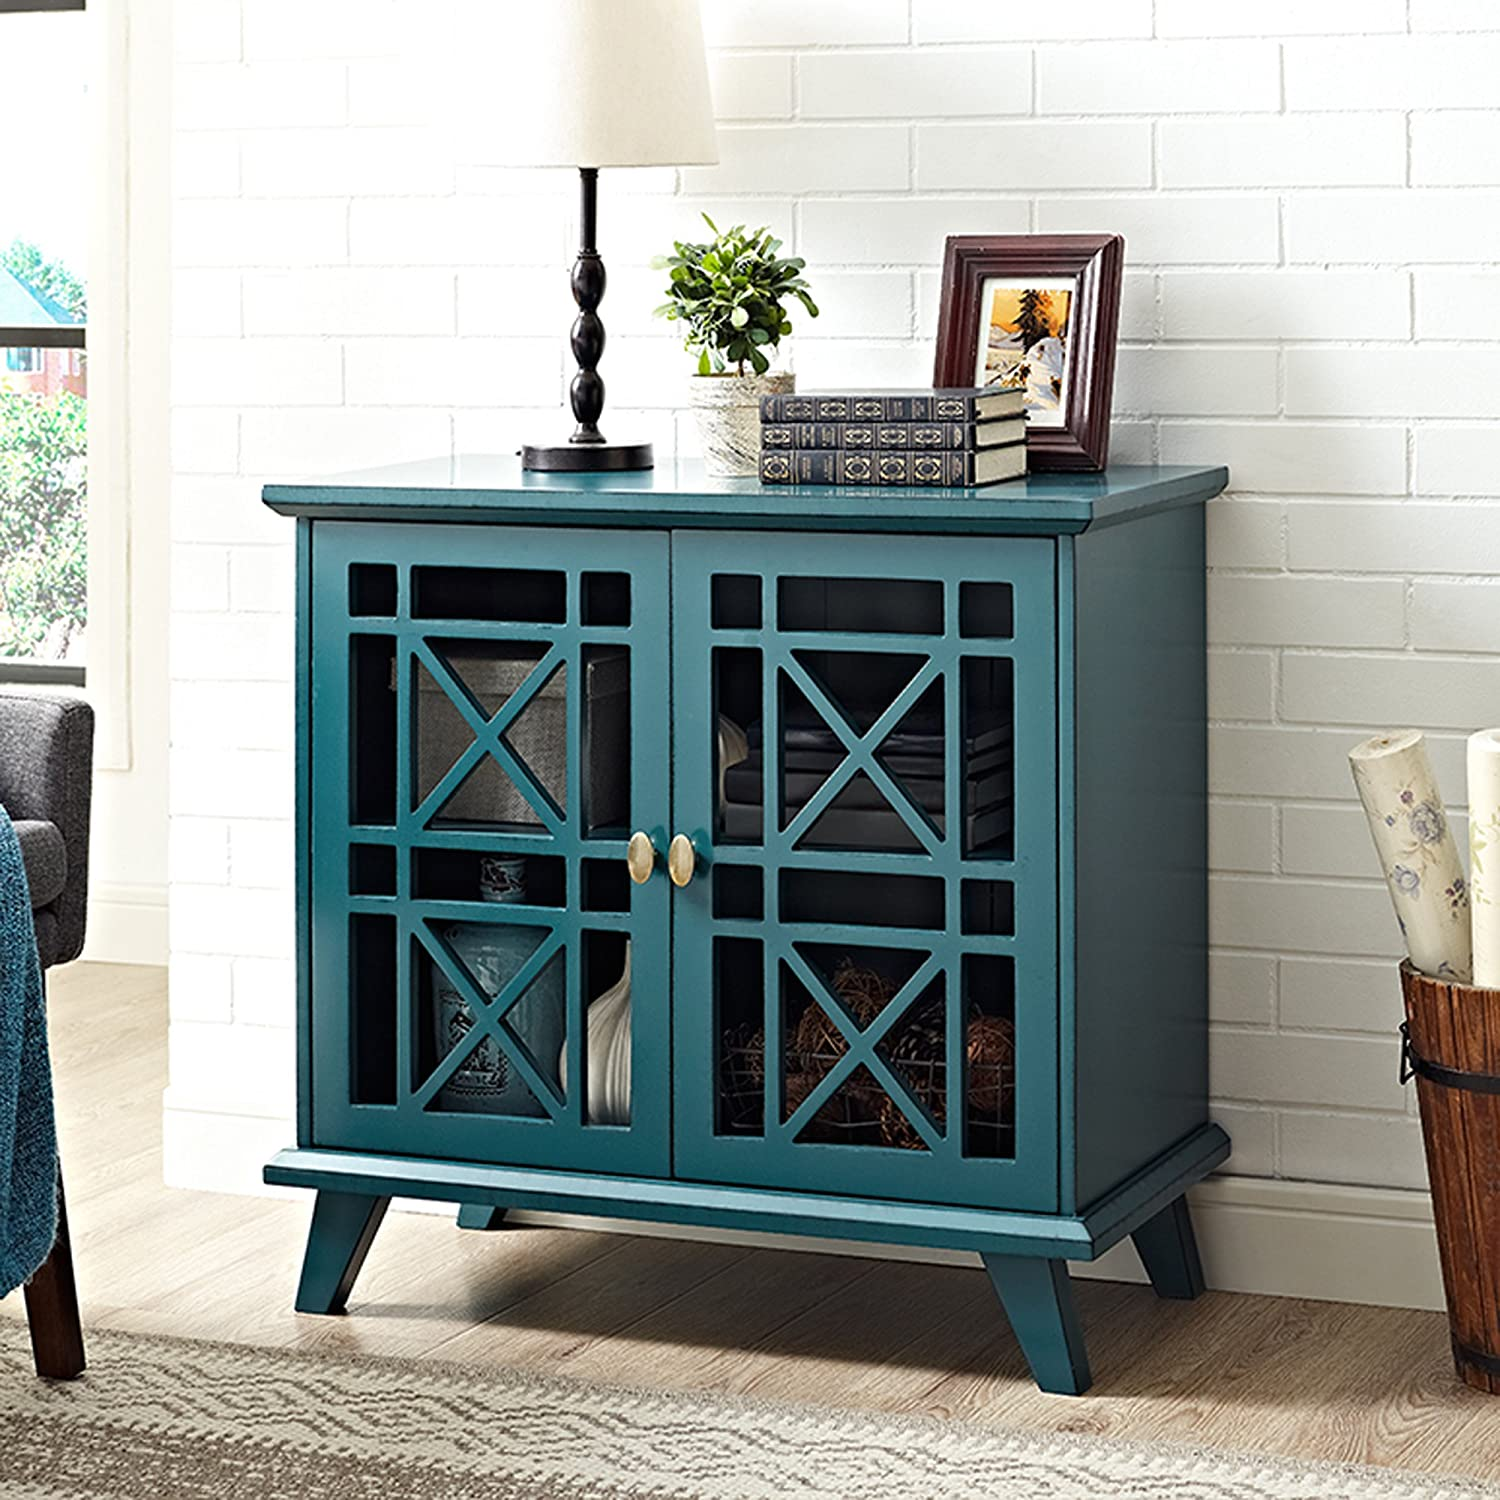 Amazon.com - Kitchen Cart with Marble top - Kitchen Islands & Carts